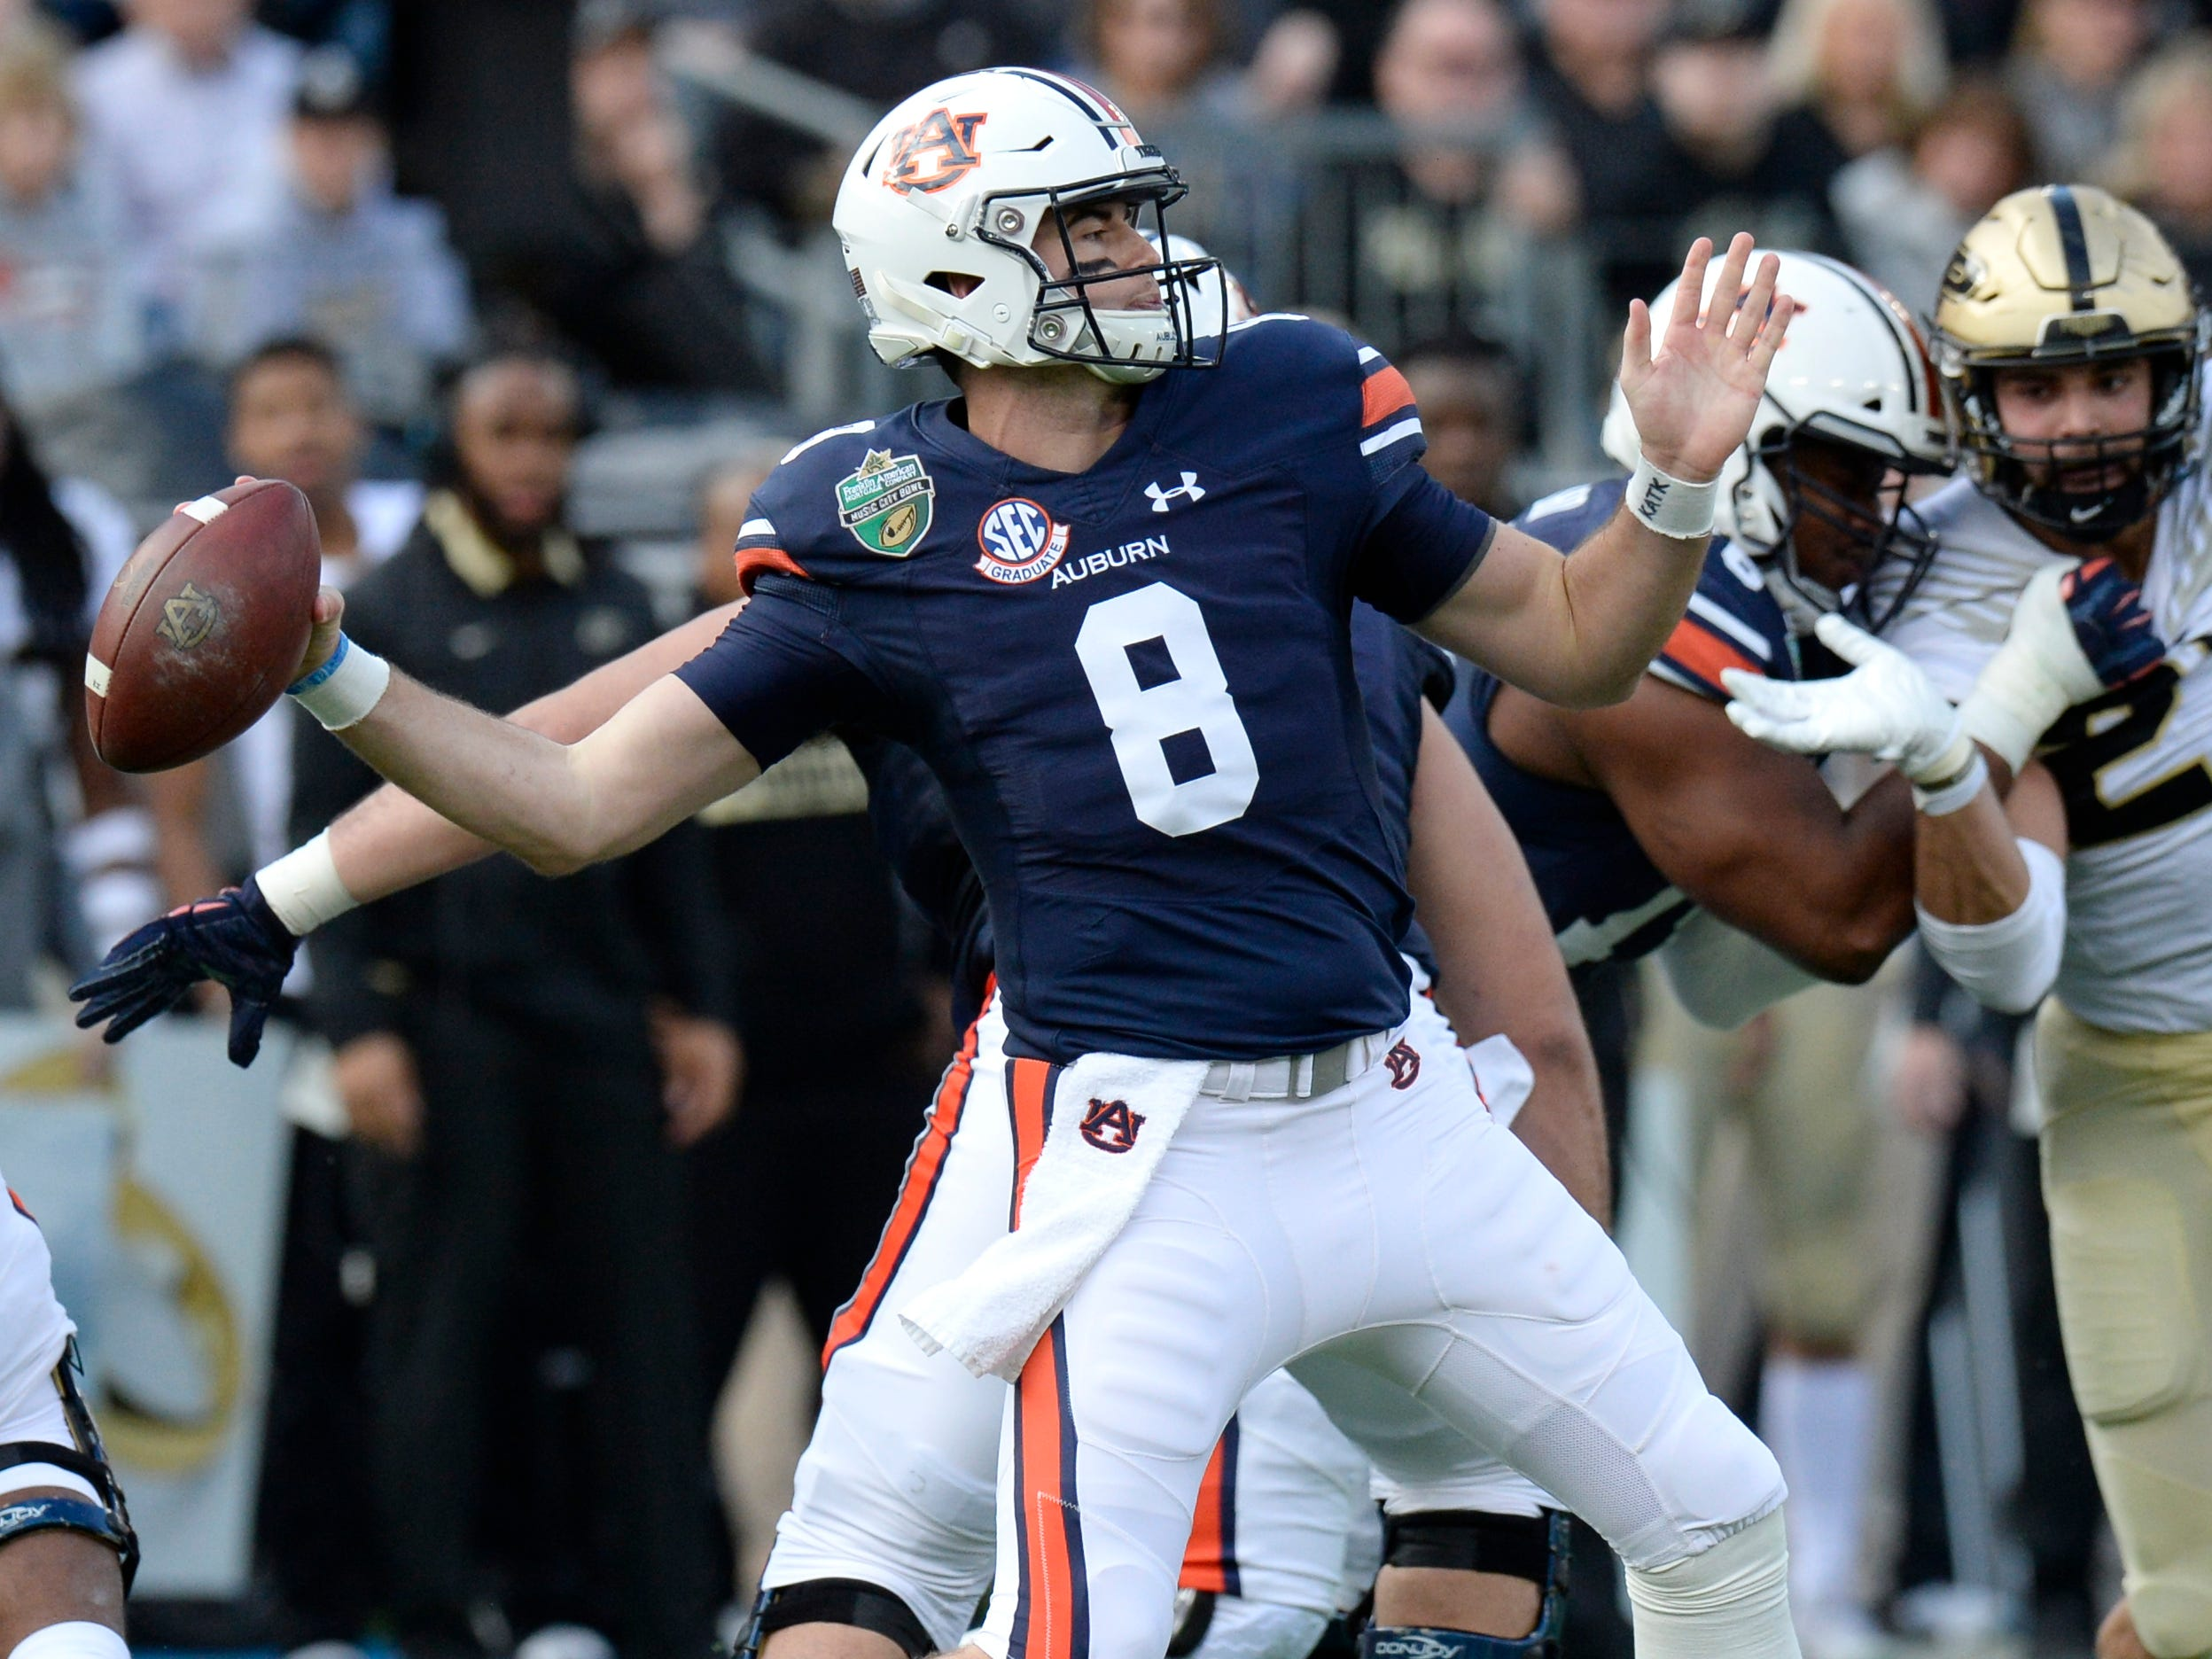 Auburn quarterback Jarrett Stidham (8) drops back to pass in the first quarter of the Music City Bowl NCAA college football game Friday, Dec. 28, 2018, at Nissan Stadium in Nashville, Tenn.